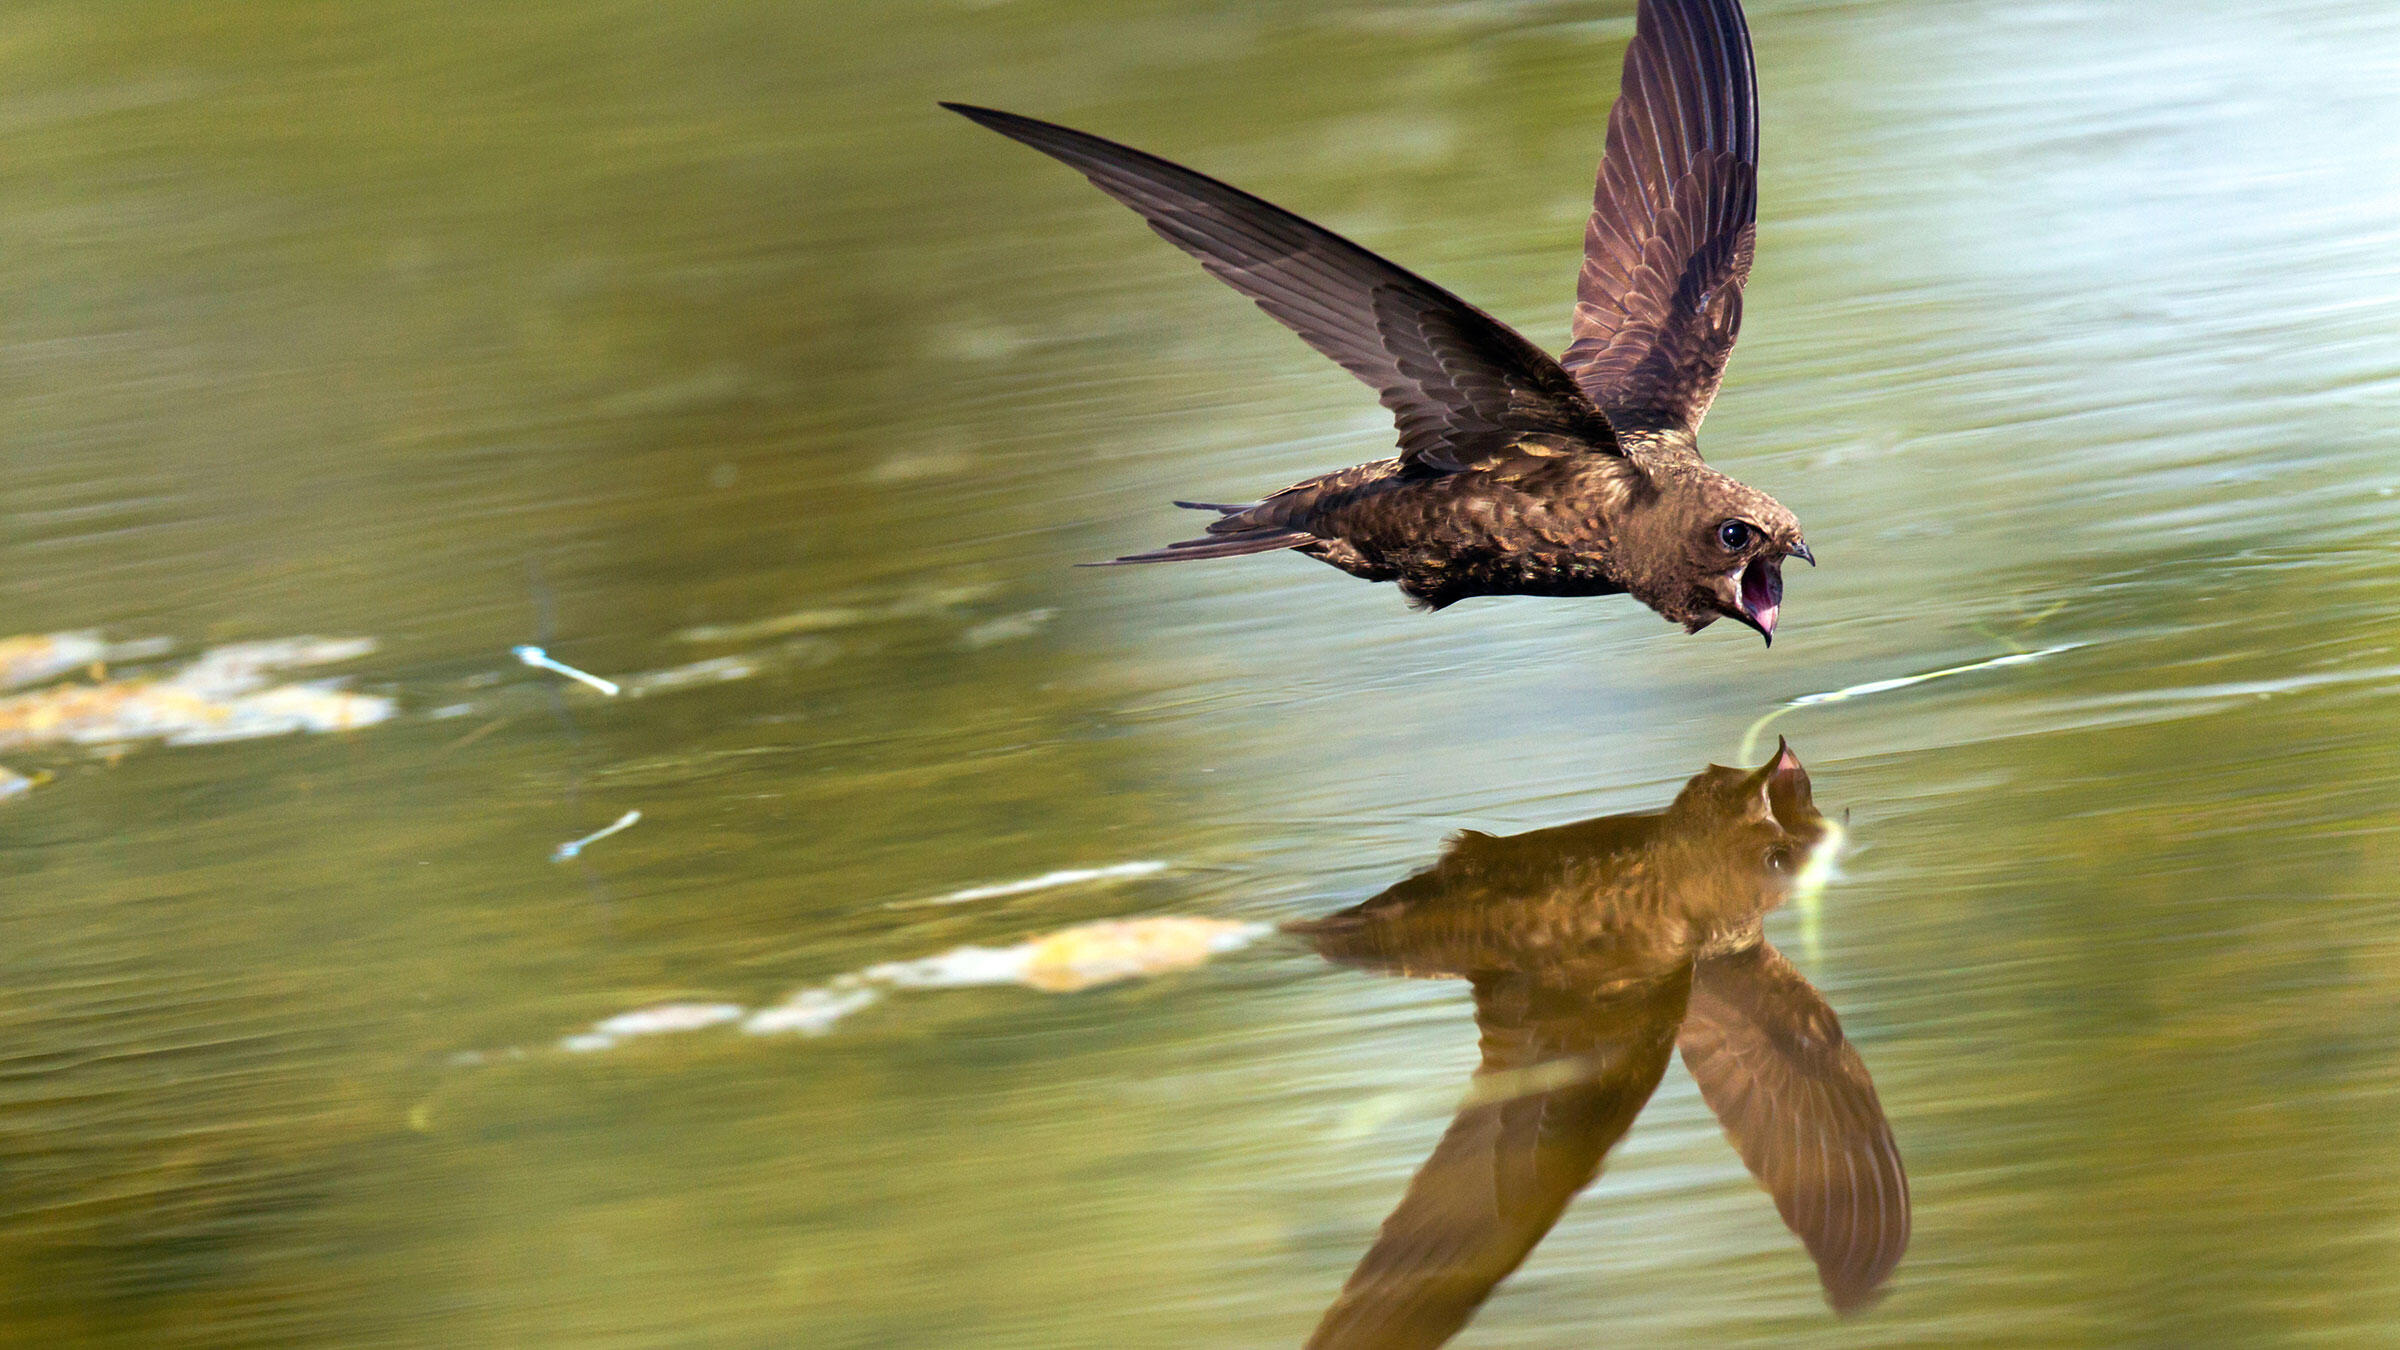 Common Swifts and other stout, fast-moving species prefer to hydrate as they're moving. Ran Schols/Minden